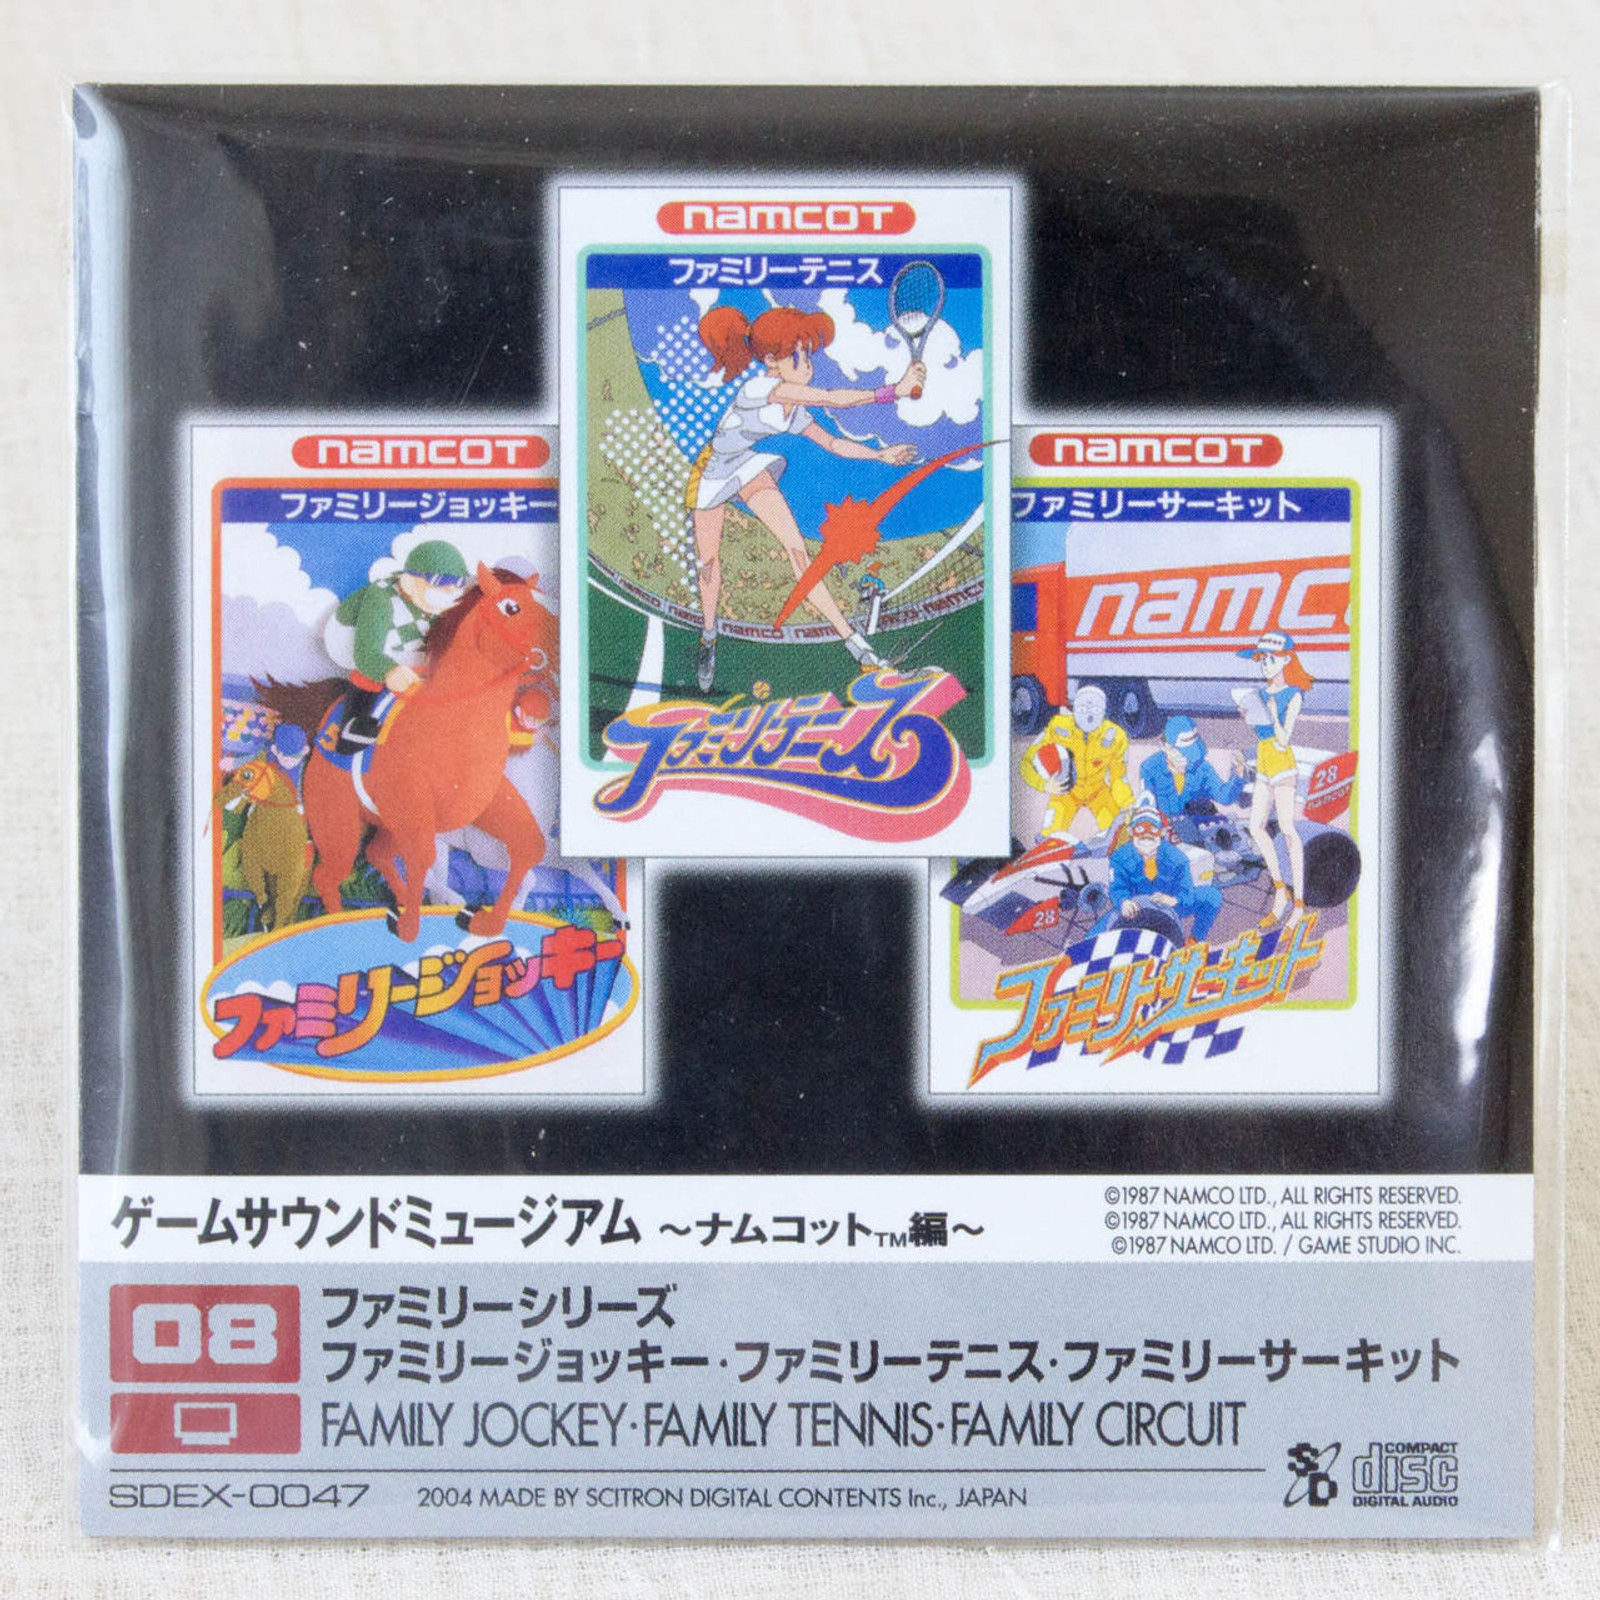 Family Tennis Game Sound Museum Namco #08 Music 8cm CD JAPAN FAMICOM NINTNEDO